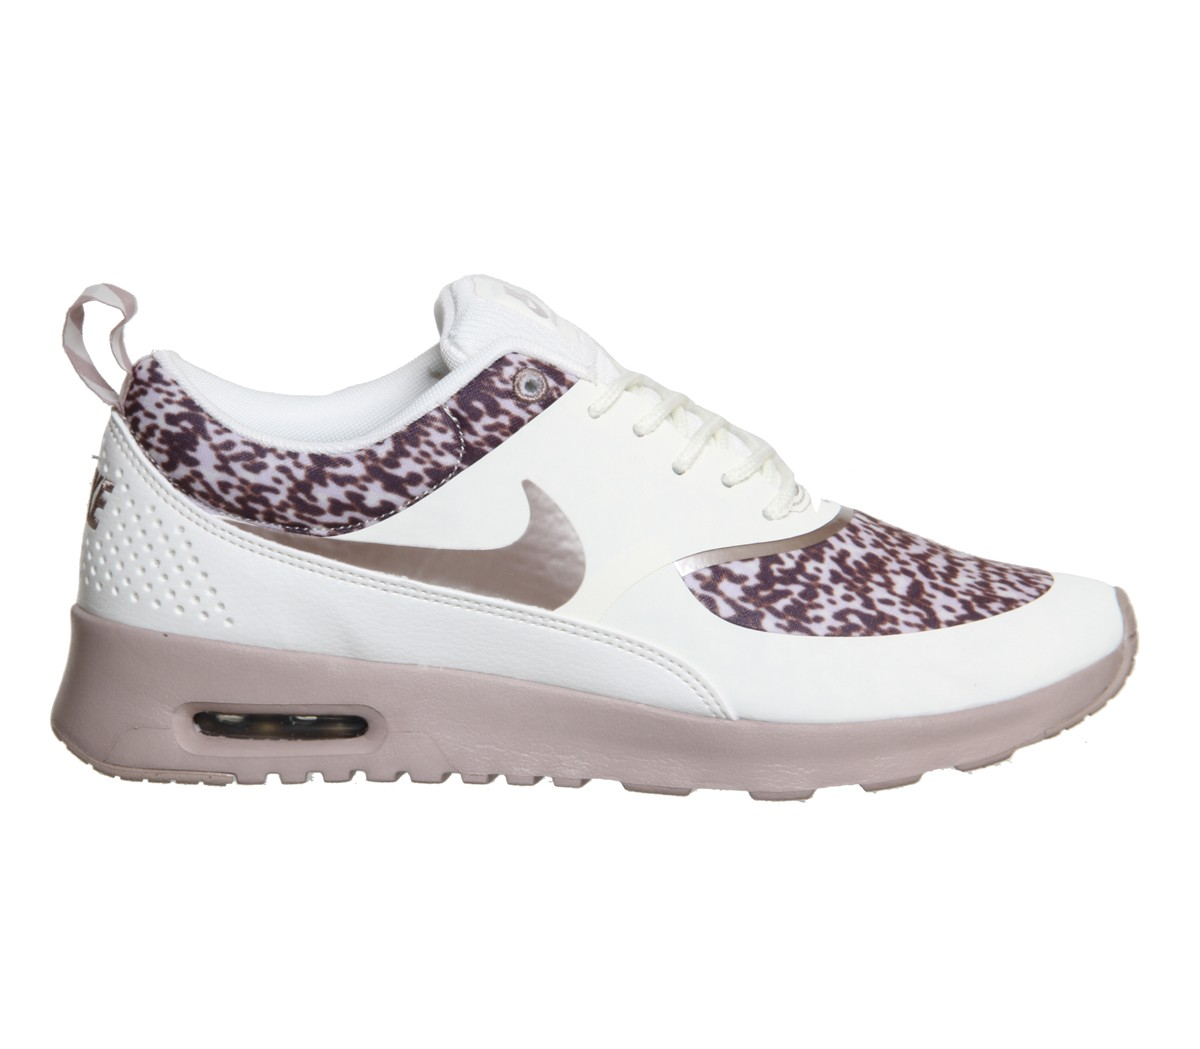 Womens Nike Air Max Thea Leopard Print Running Shoes Sail Orewood Brown - Style 599408 100